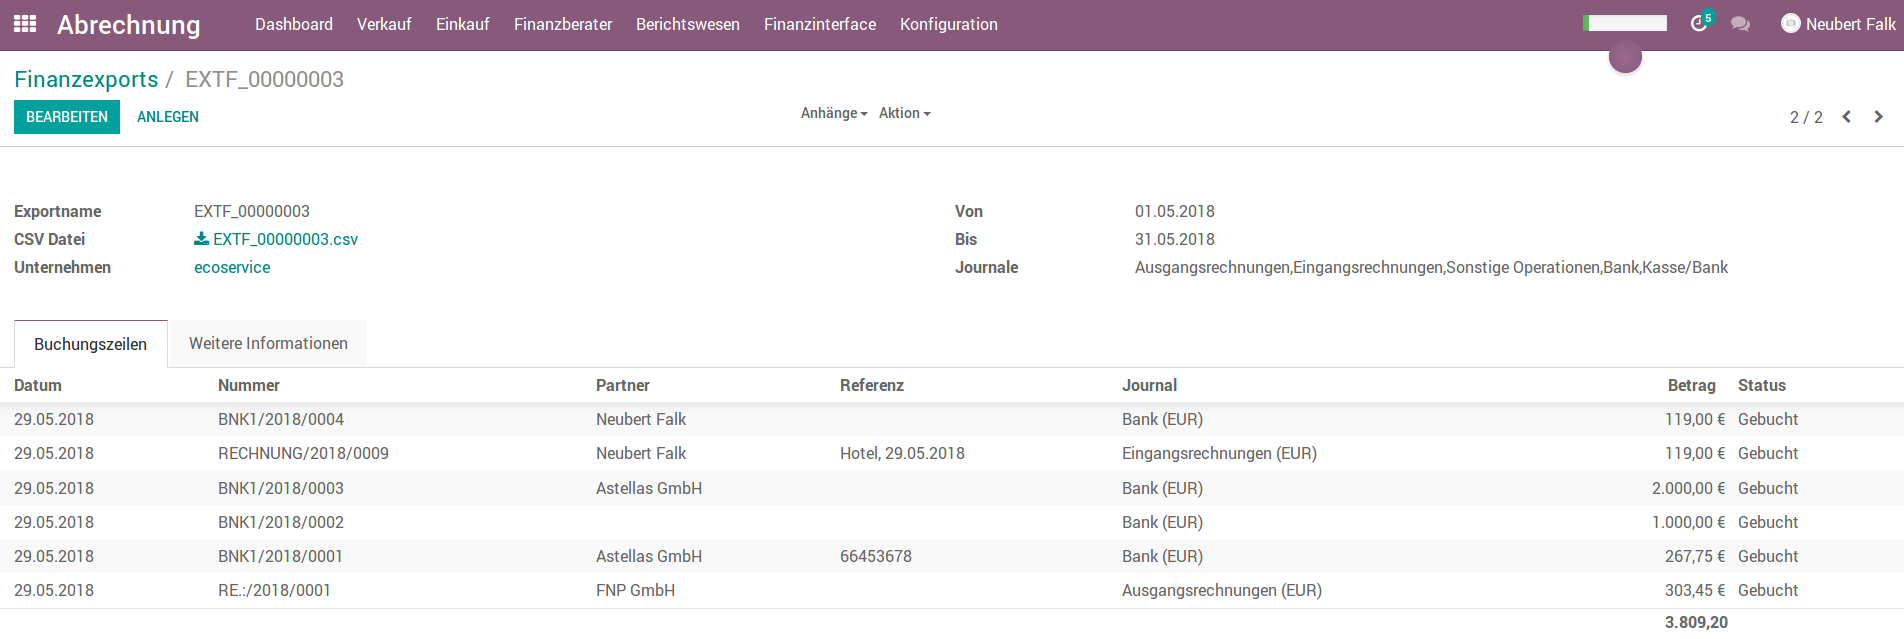 Odoo Datev Export